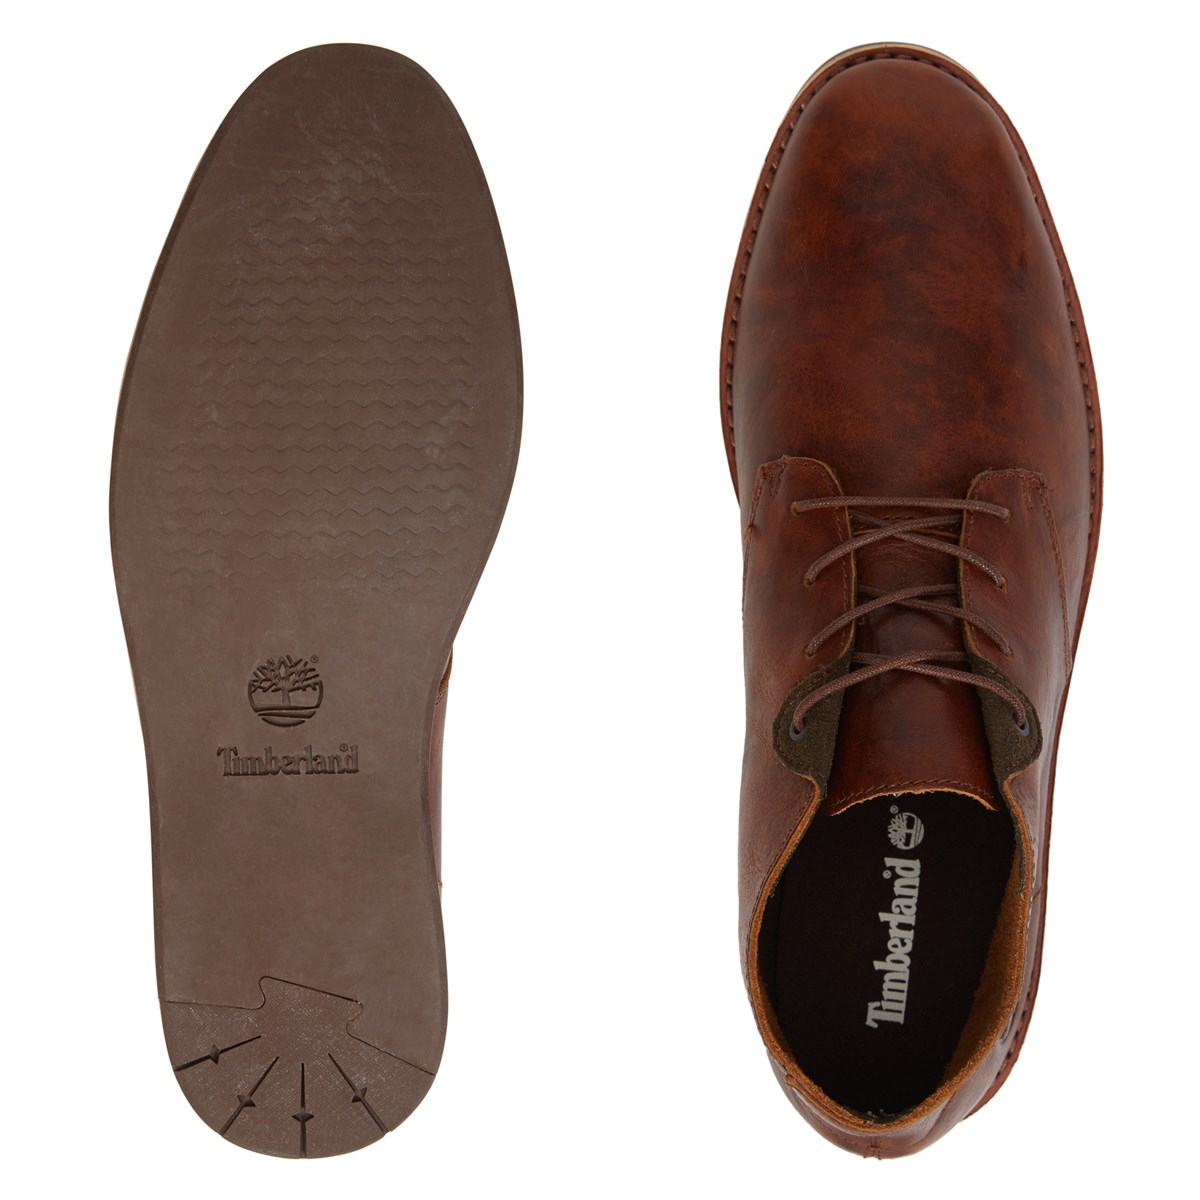 54016db2e0fa Men s Revenia Plain Toe Brown Chukka. Previous. default view · ALT1 · ALT2